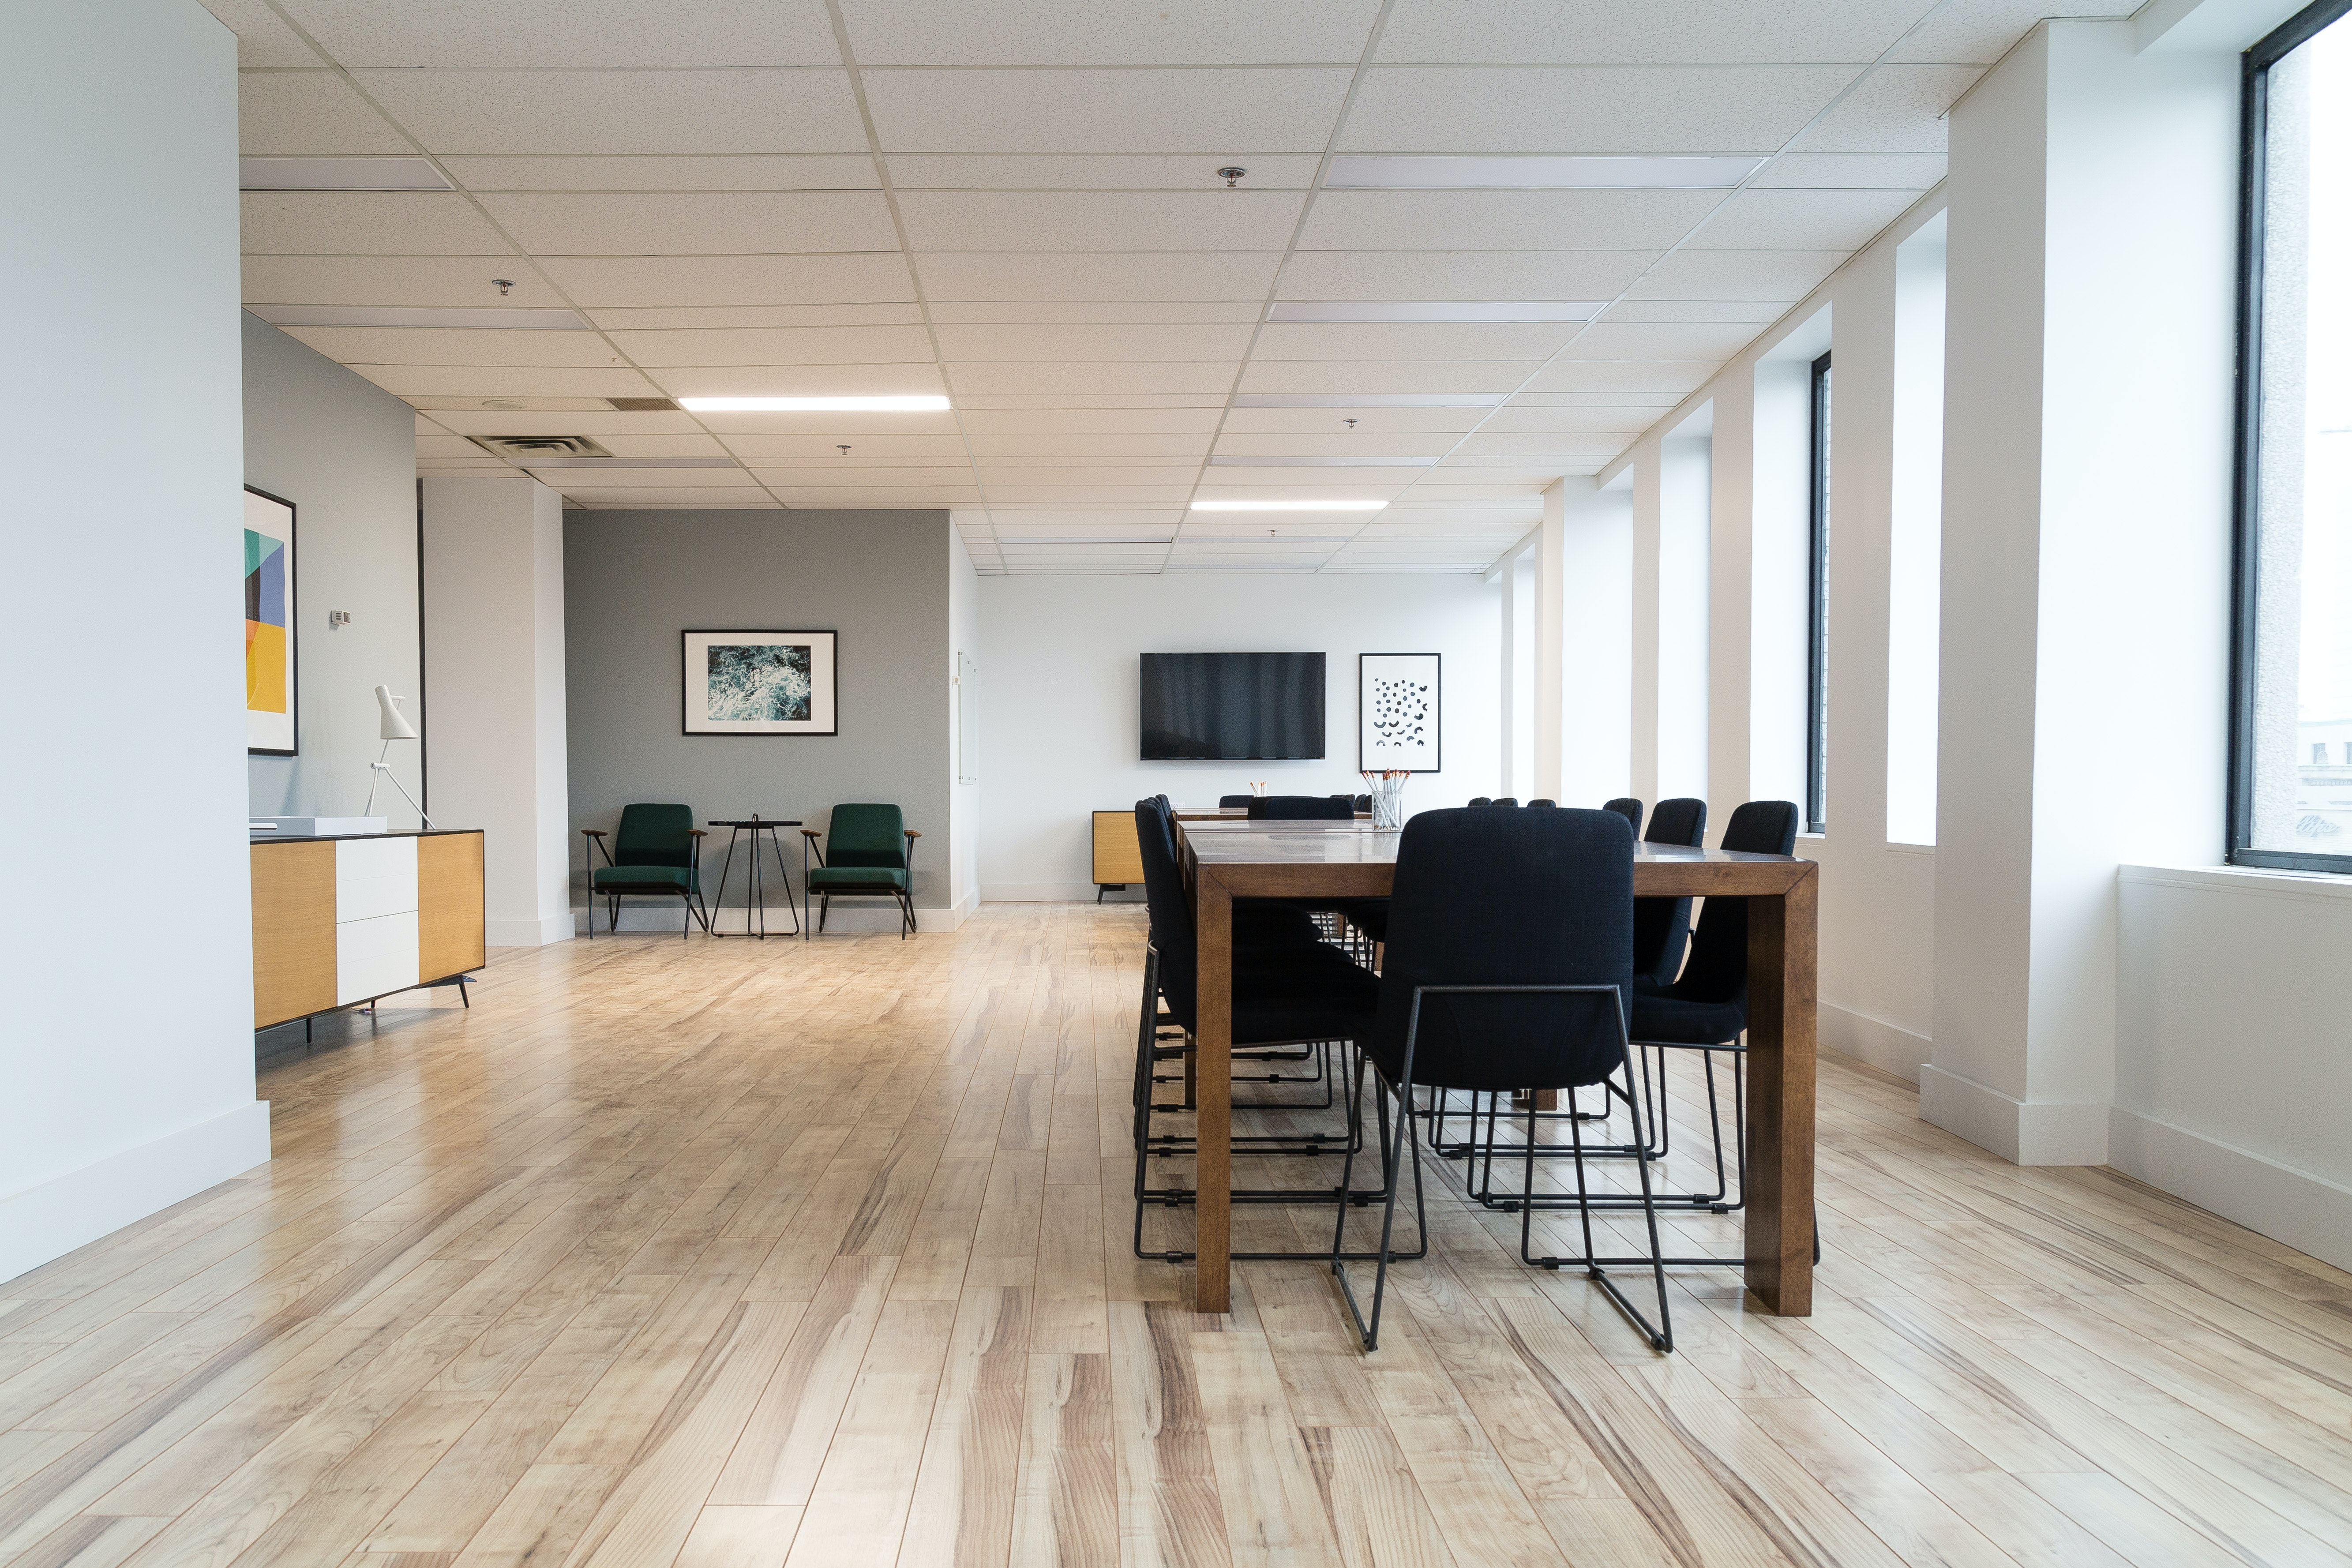 training space at 555 Boulevard René-LevesqueO. ,Montreal